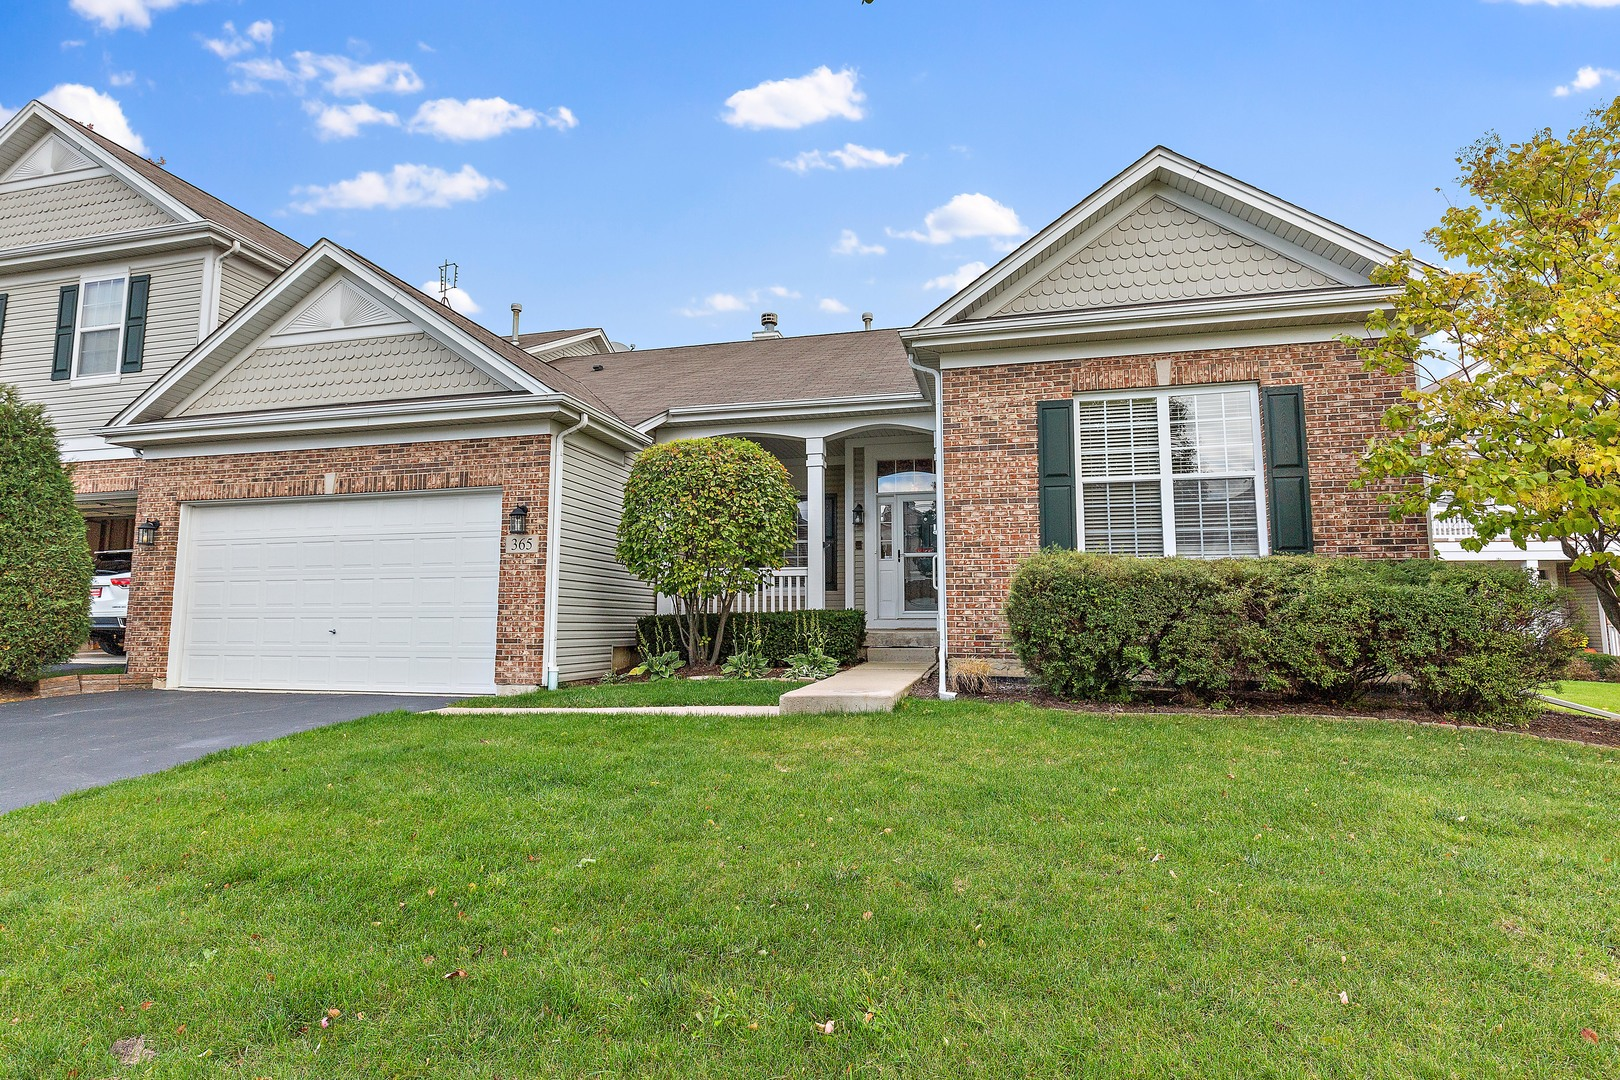 Photo for 365 Ashby Court, Geneva, IL 60134 (MLS # 10551926)